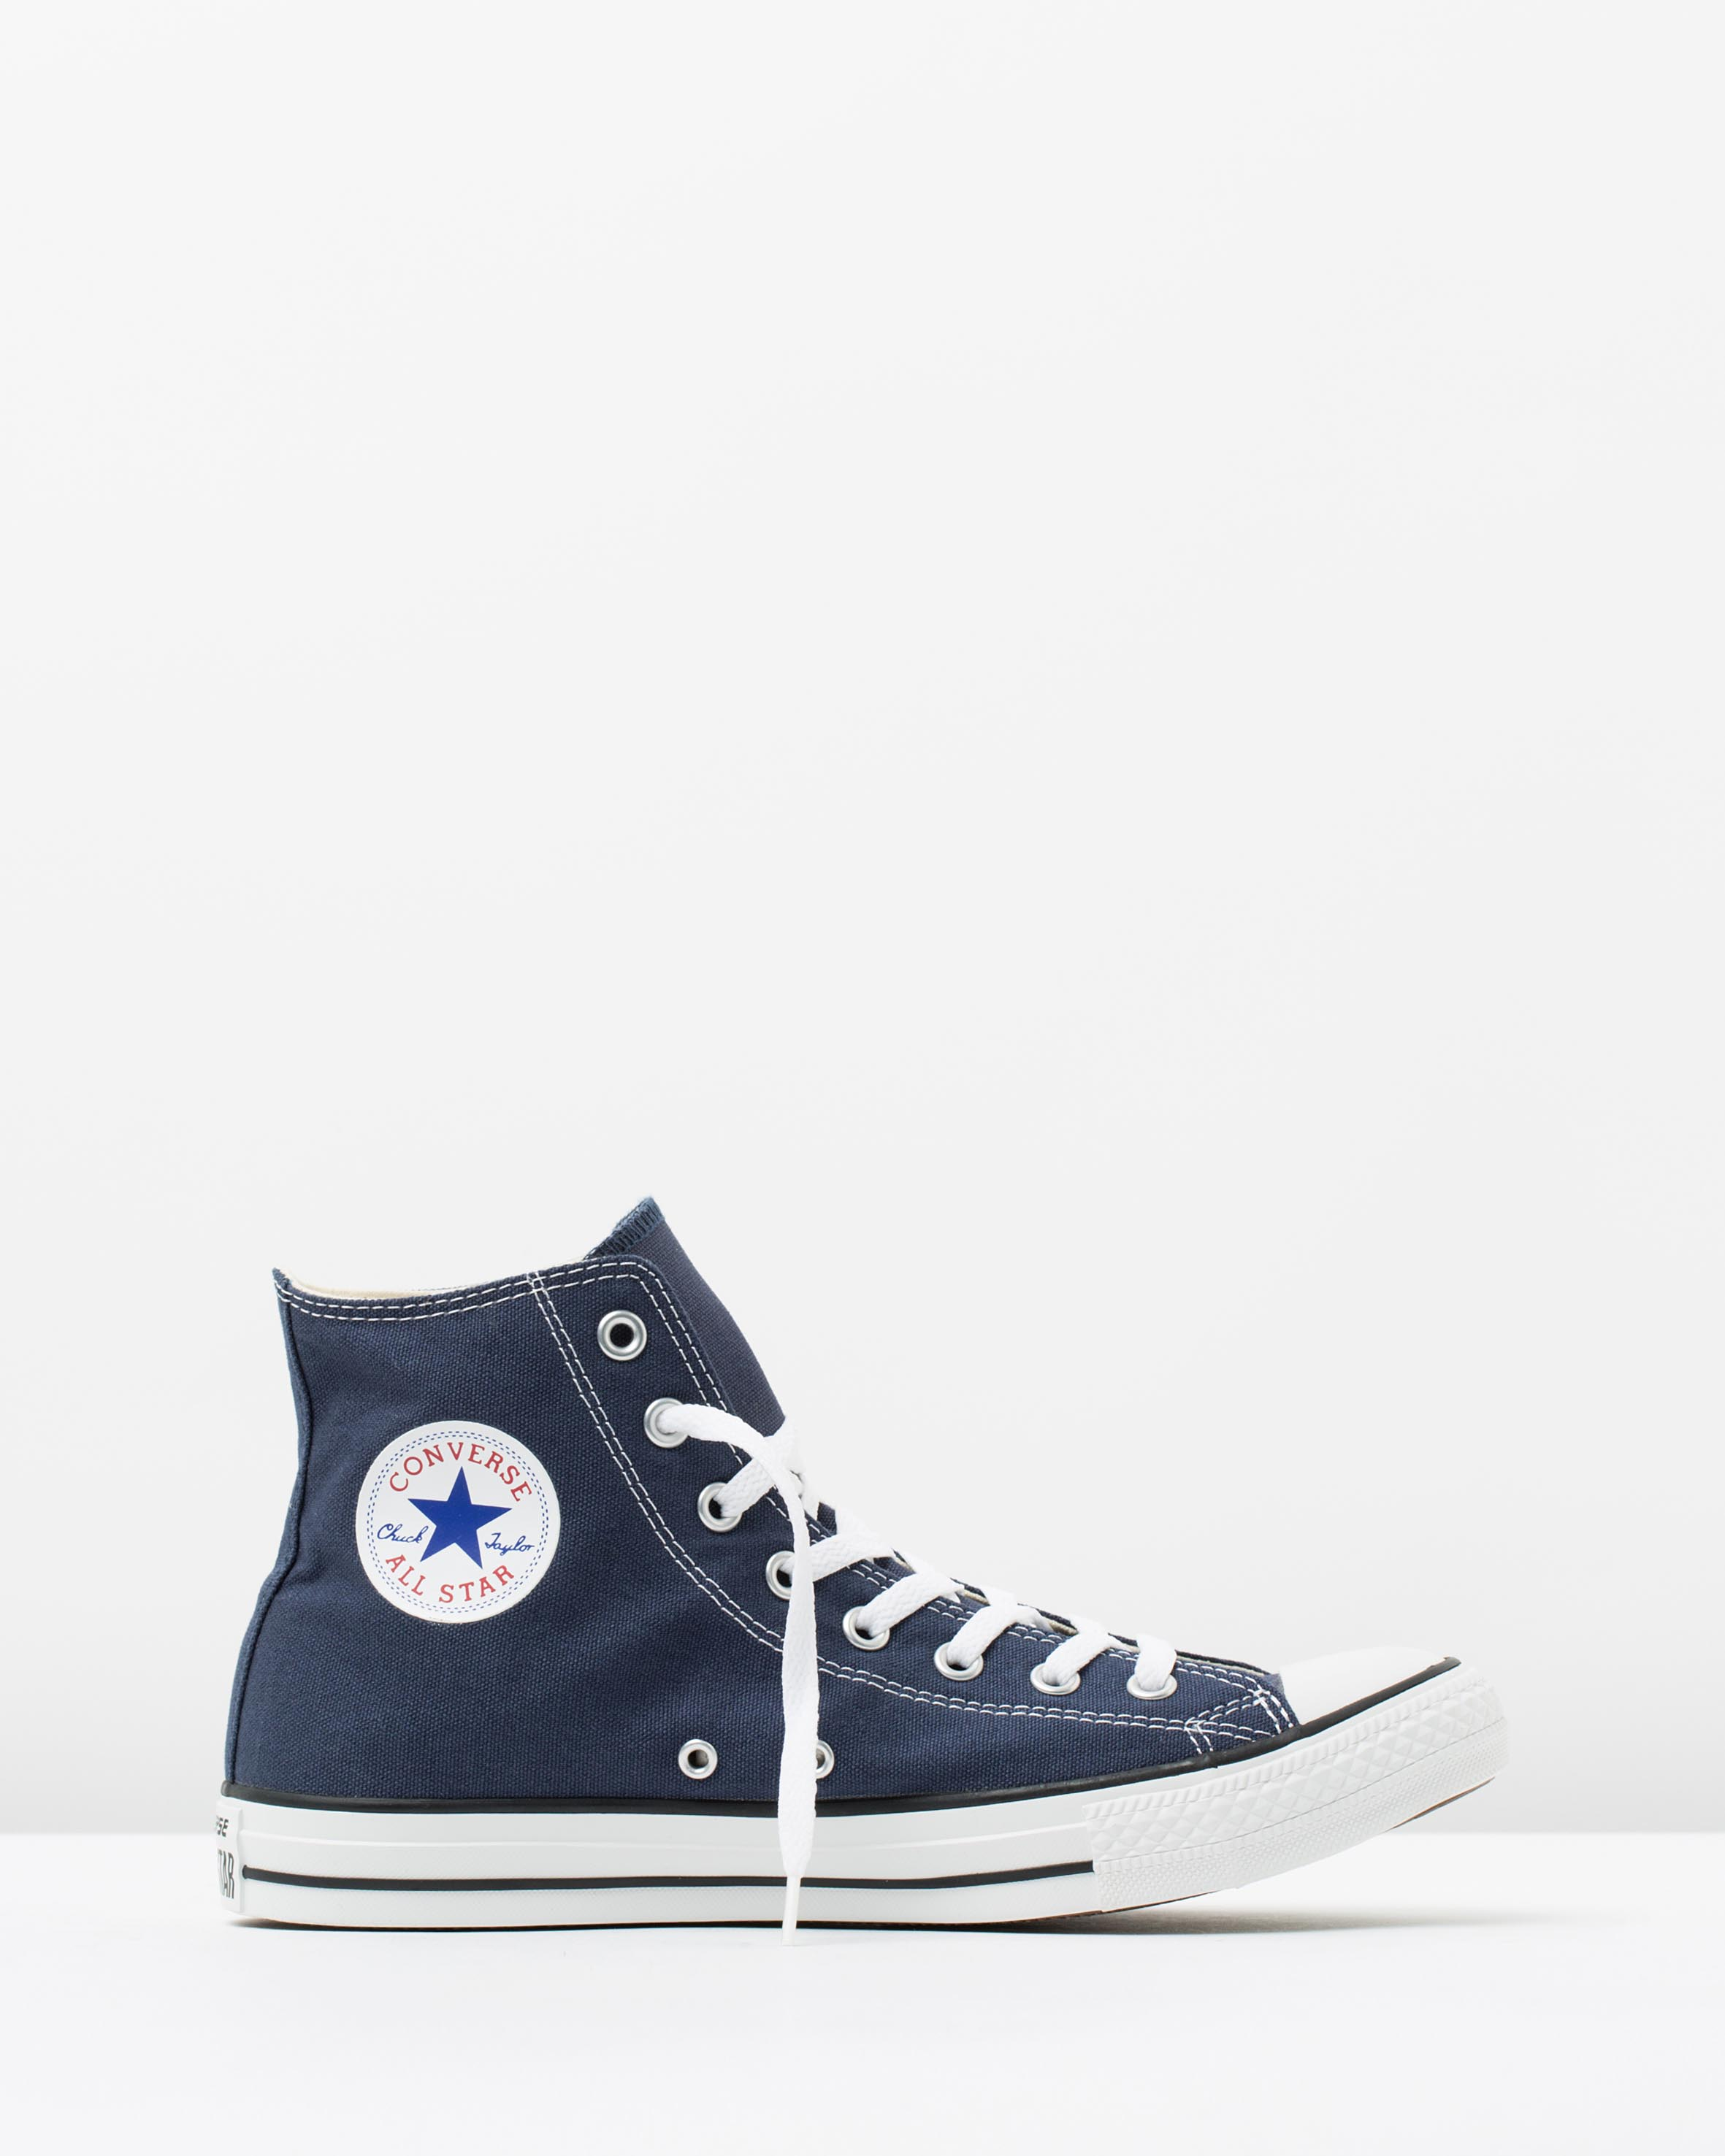 fb1893b8c6270 Converse Chuck Taylor All Star Hi Womens Navy 1 ...